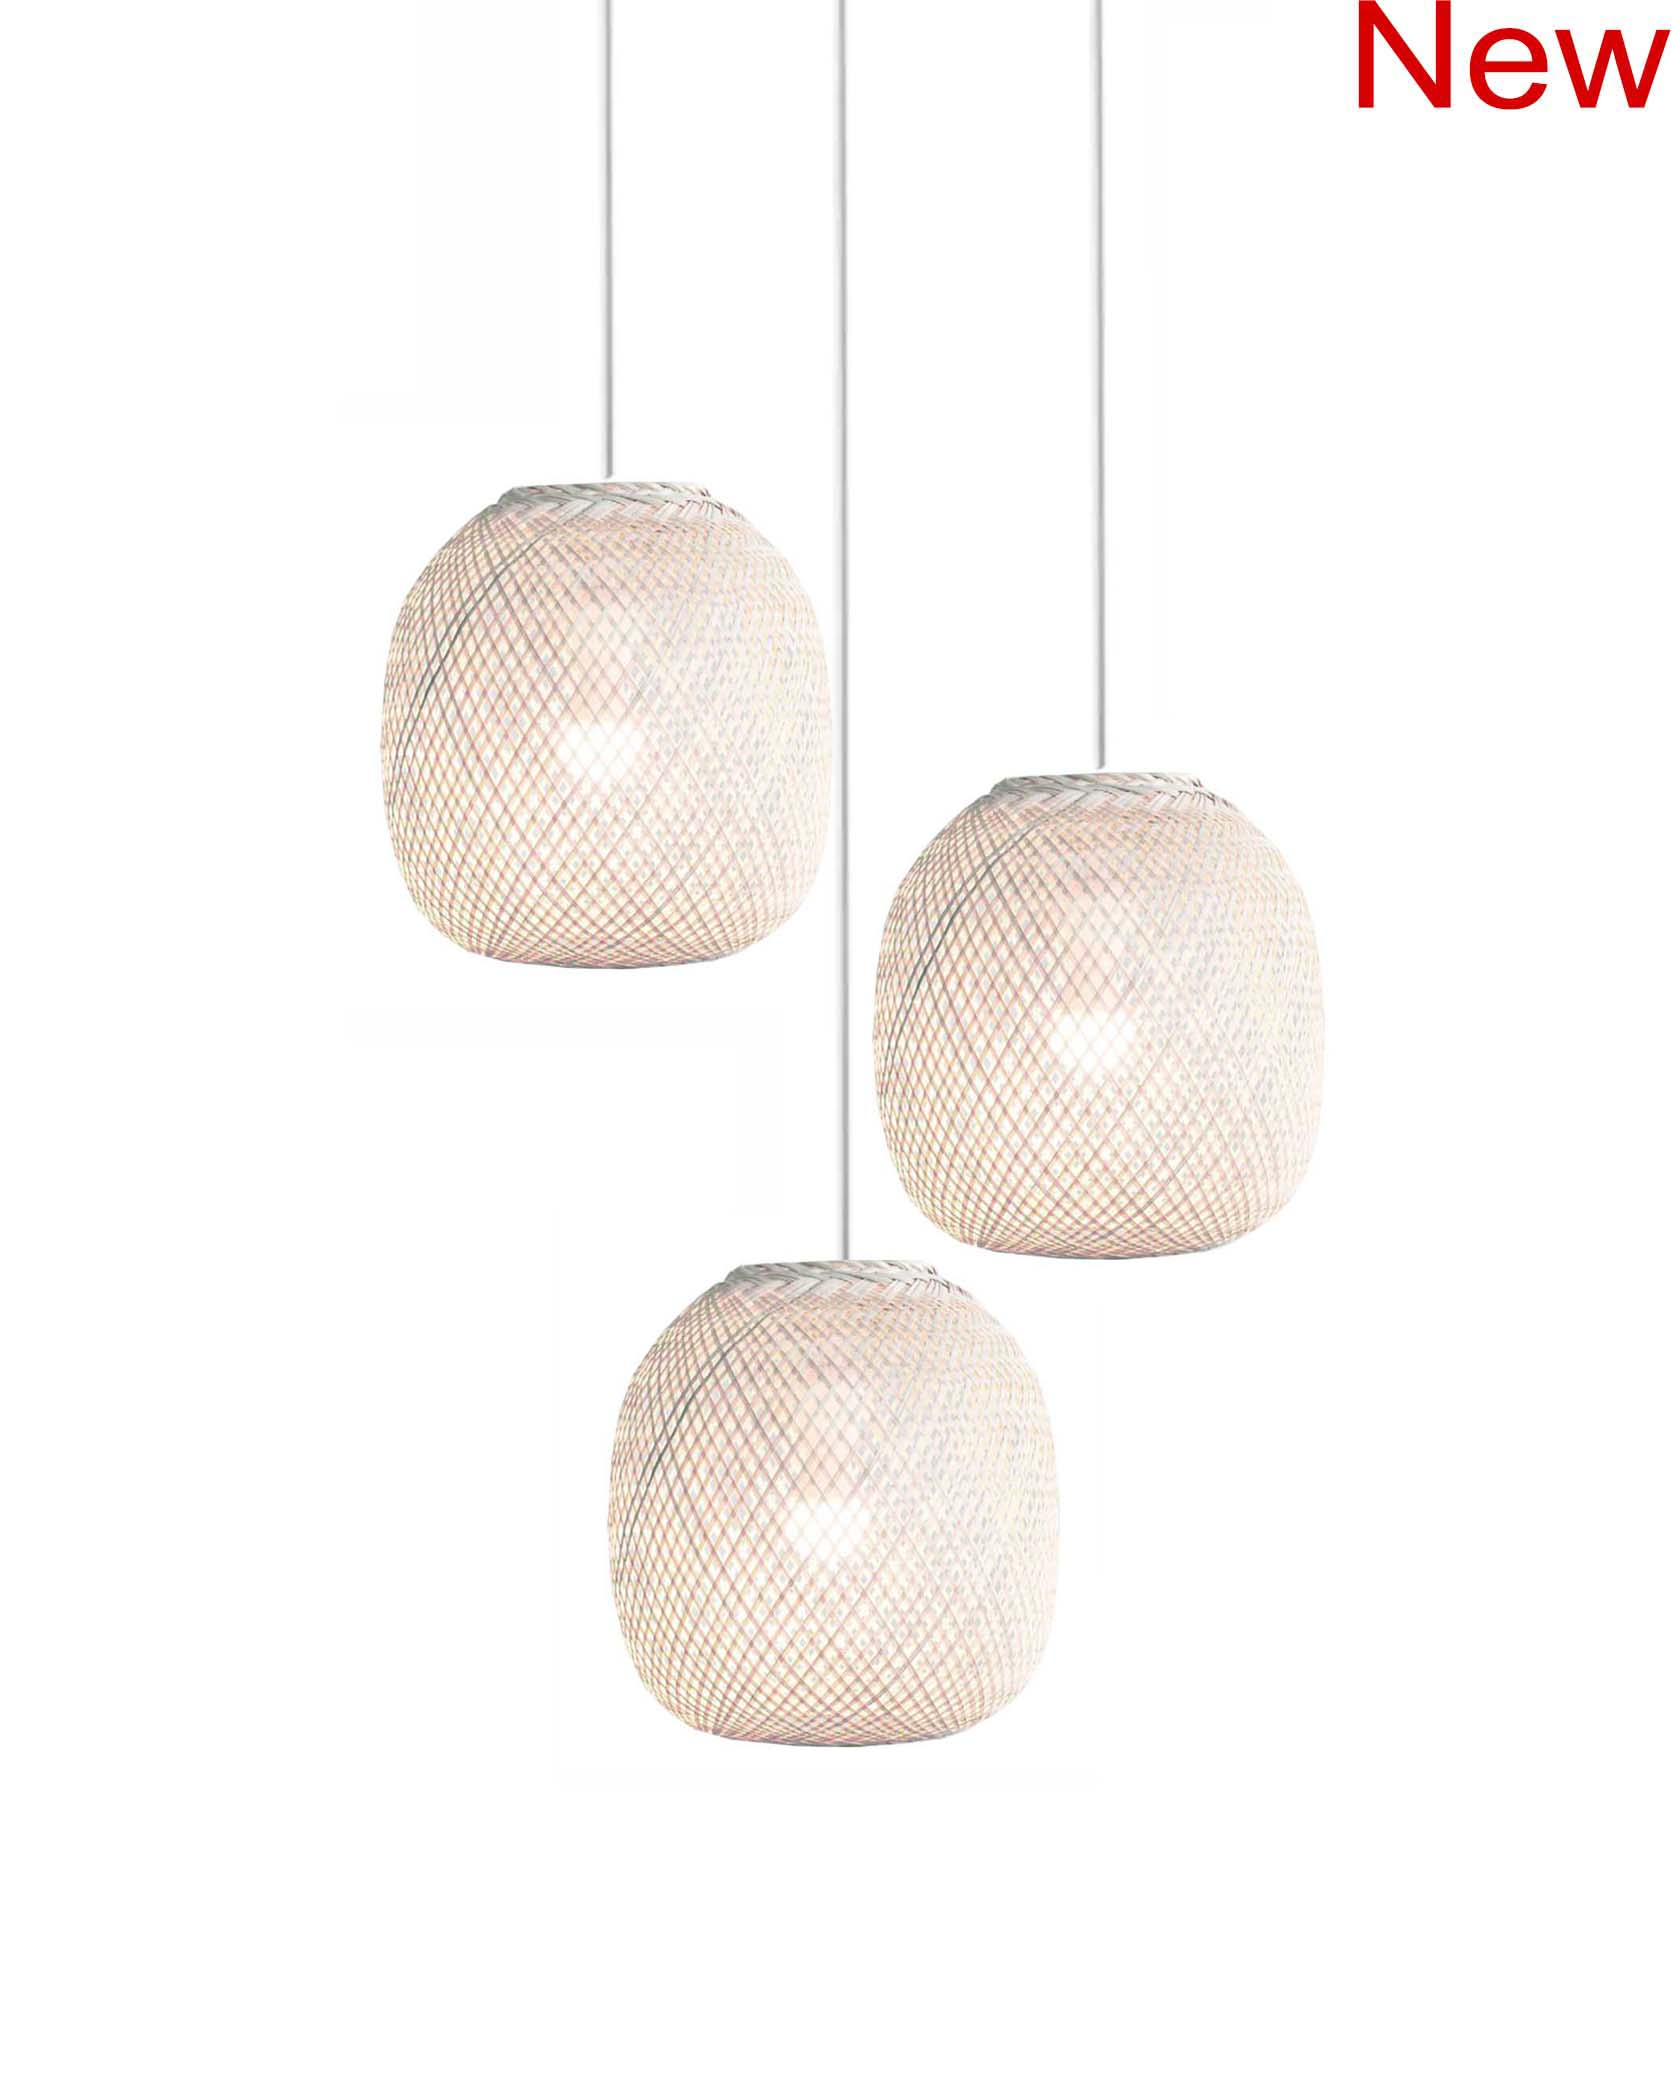 Bamboo Ball Chandelier product photo #1